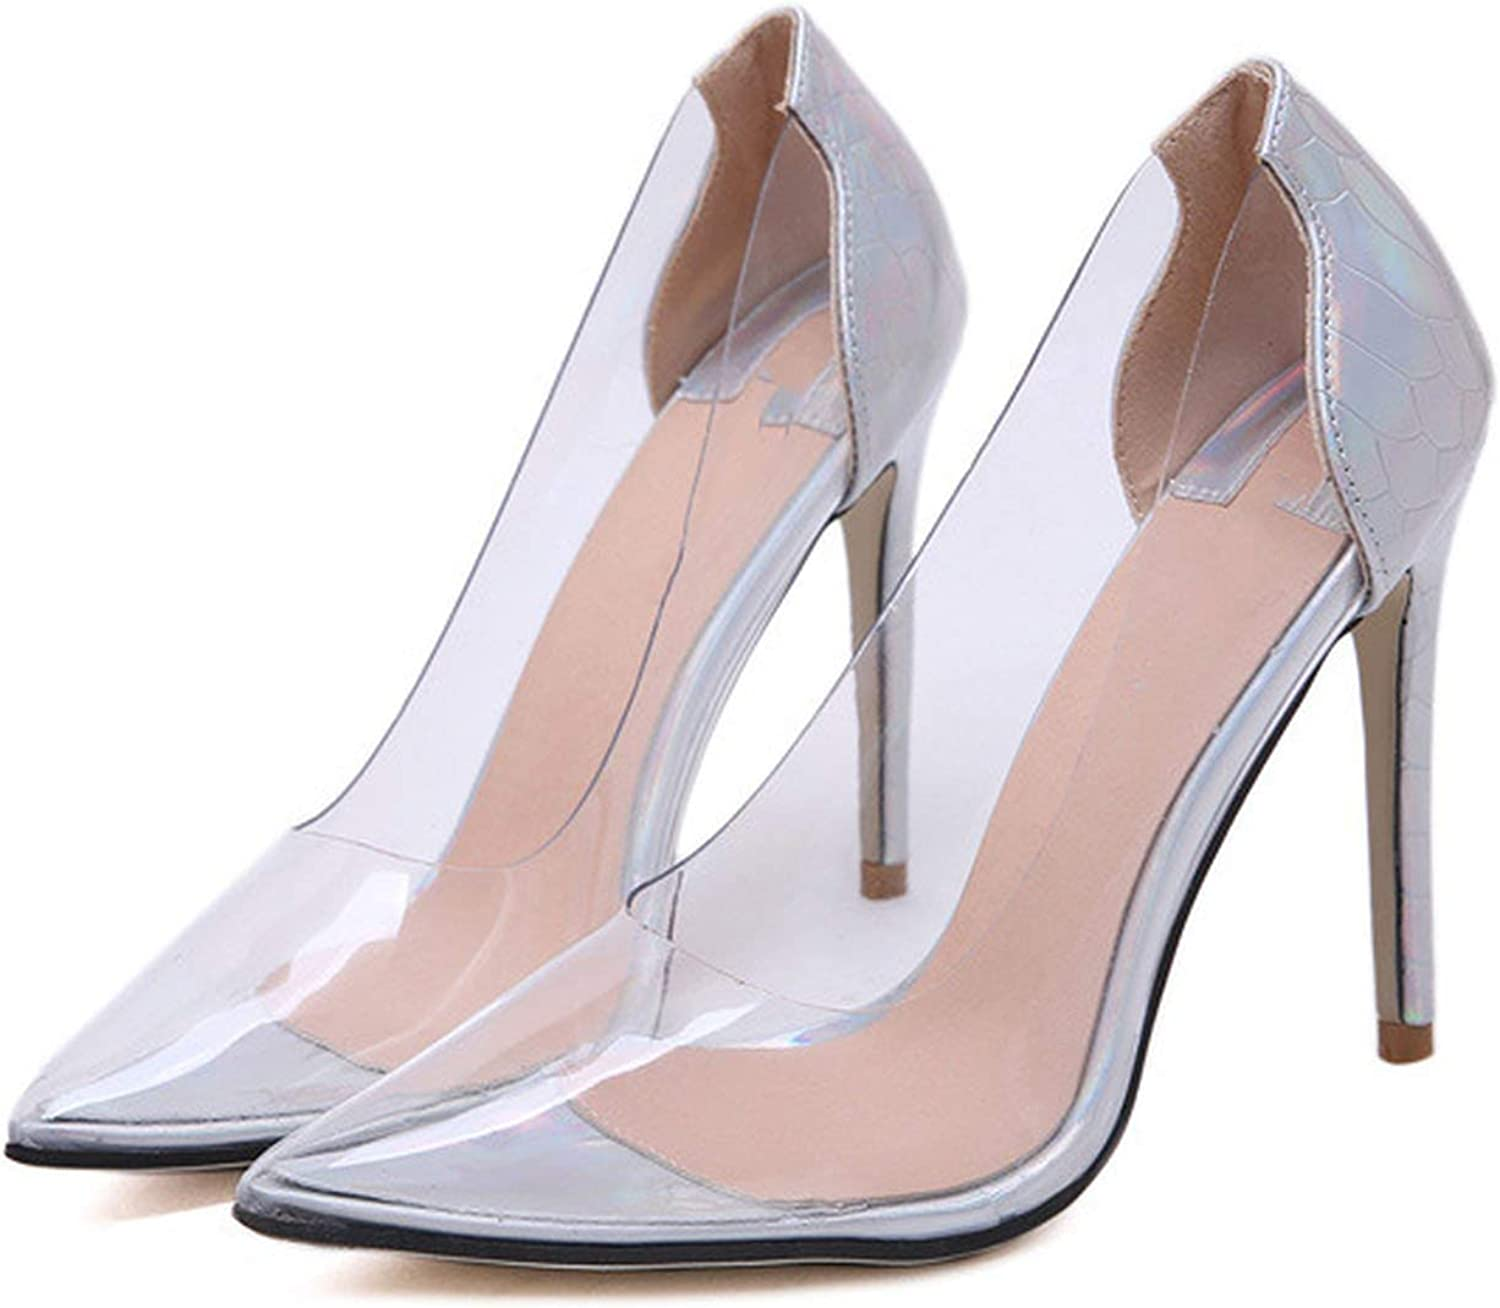 Sonder-Store Transparent Pumps Fashionable color Wedding shoes High Heels Pointed Toes Womens Party shoes Nightclub Pump